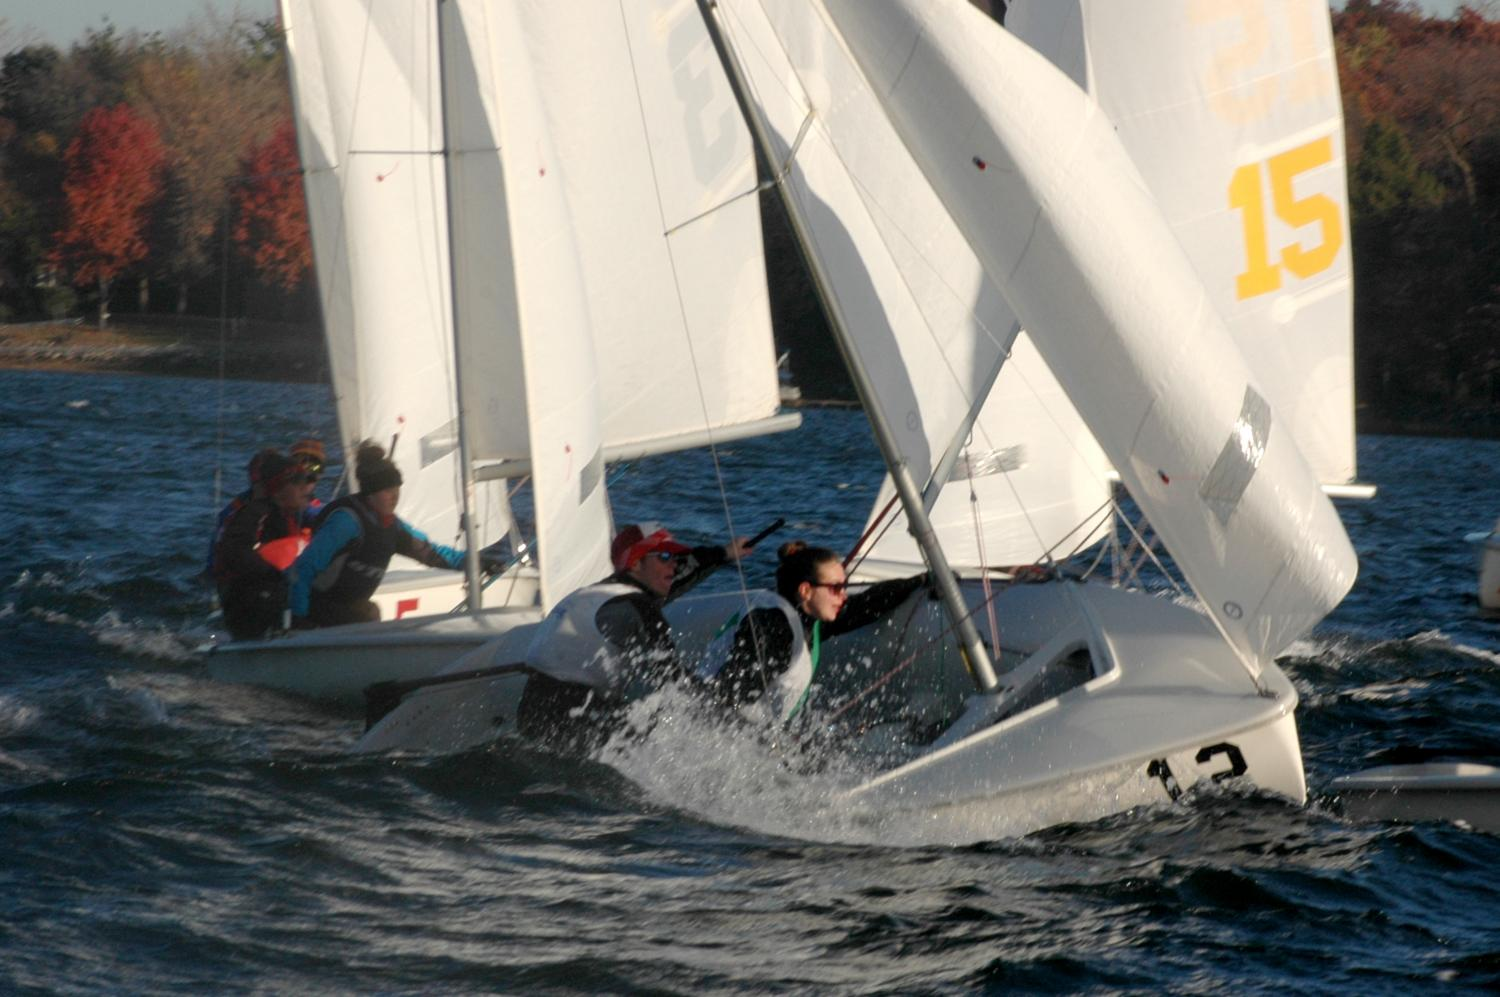 Senior Jack Indritz sails at a regatta in a two-person boat.